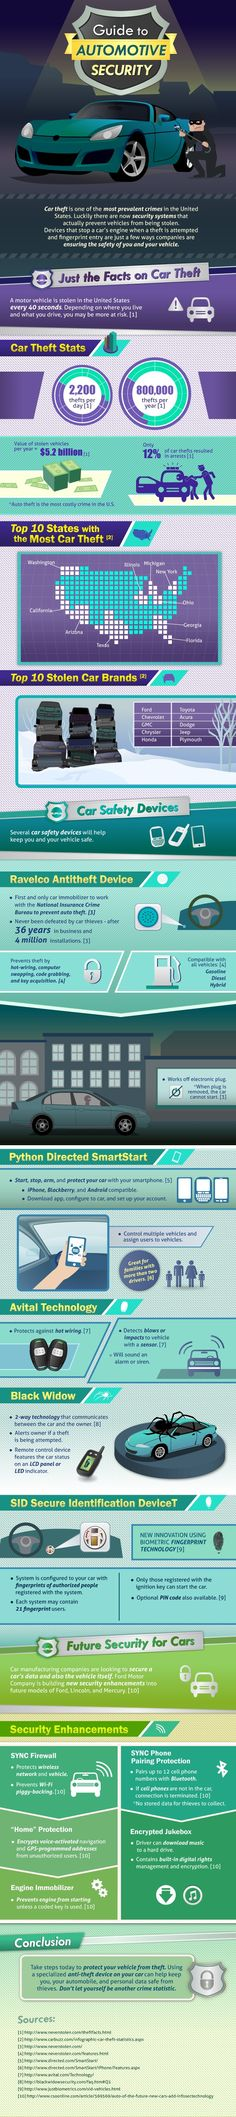 Car theft is one of the most prevalent crimes in the United States. Luckily there are now security systems that actually prevent vehicles from being stolen. Devices that stop a car's engine when a theft is attempted and fingerprint entry are just a few ways companies are ensuring the safety of you and your vehicle.